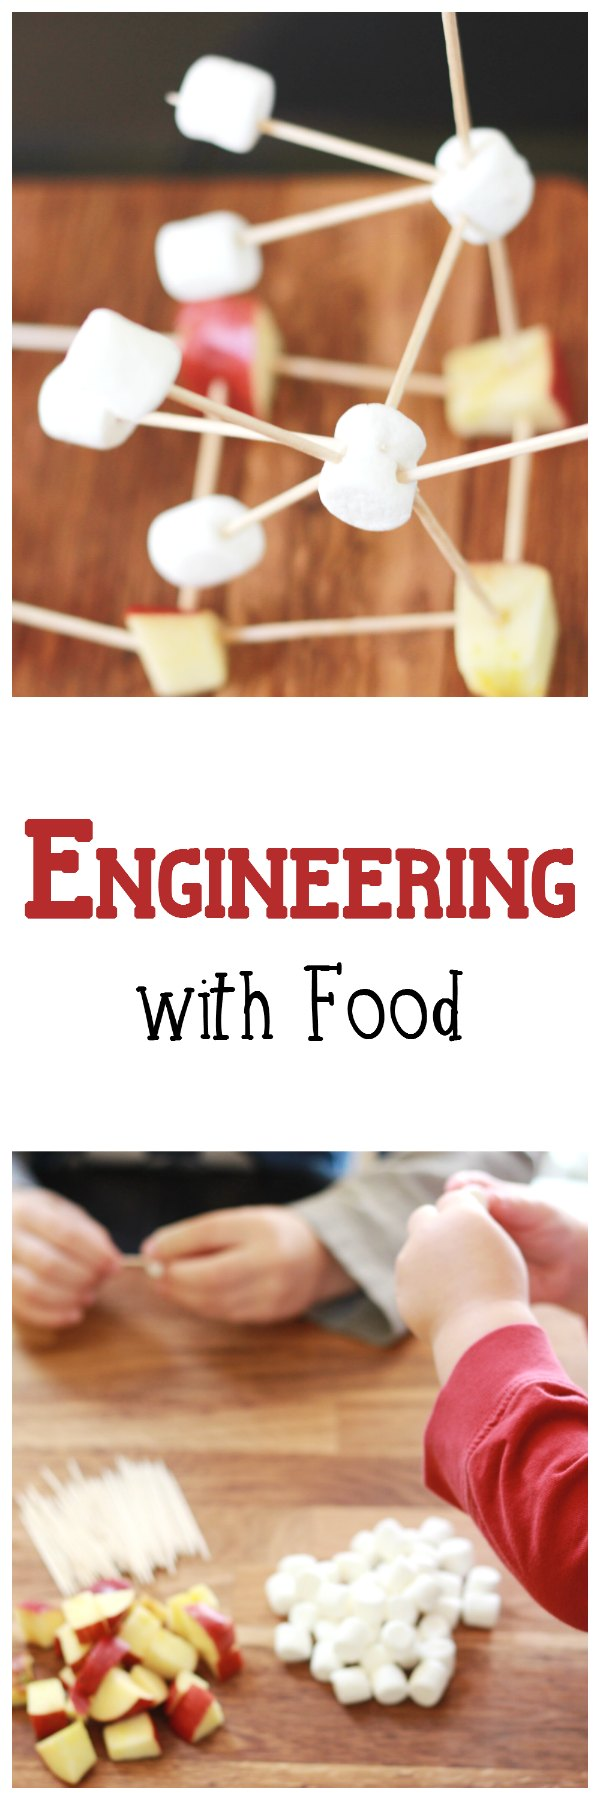 Engineering with Food